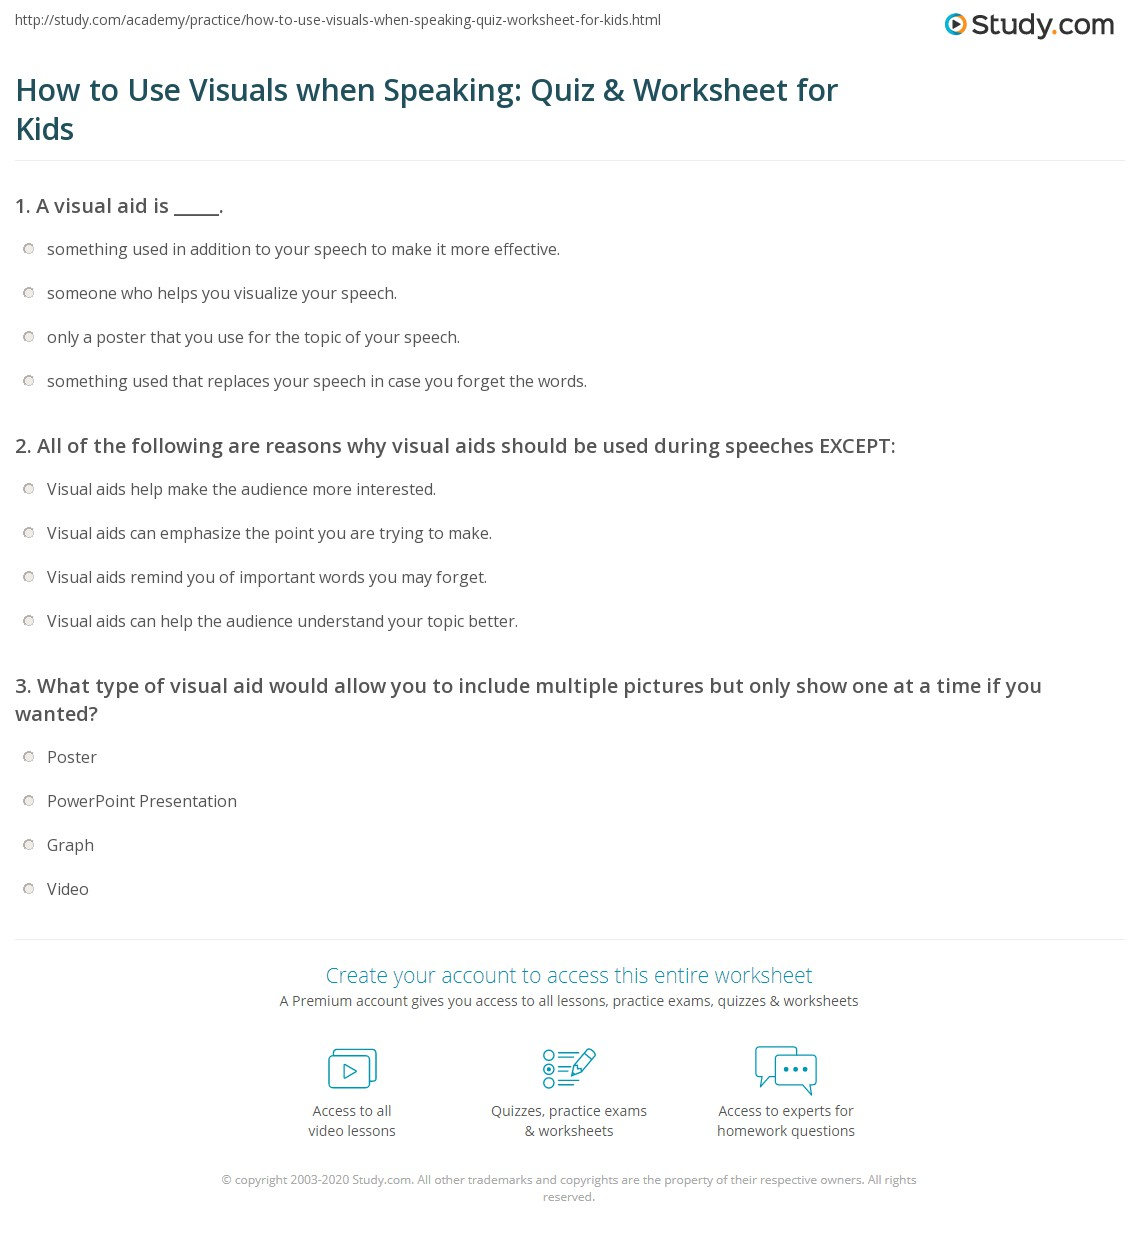 How to Use Visuals when Speaking: Quiz & Worksheet for Kids | Study.com